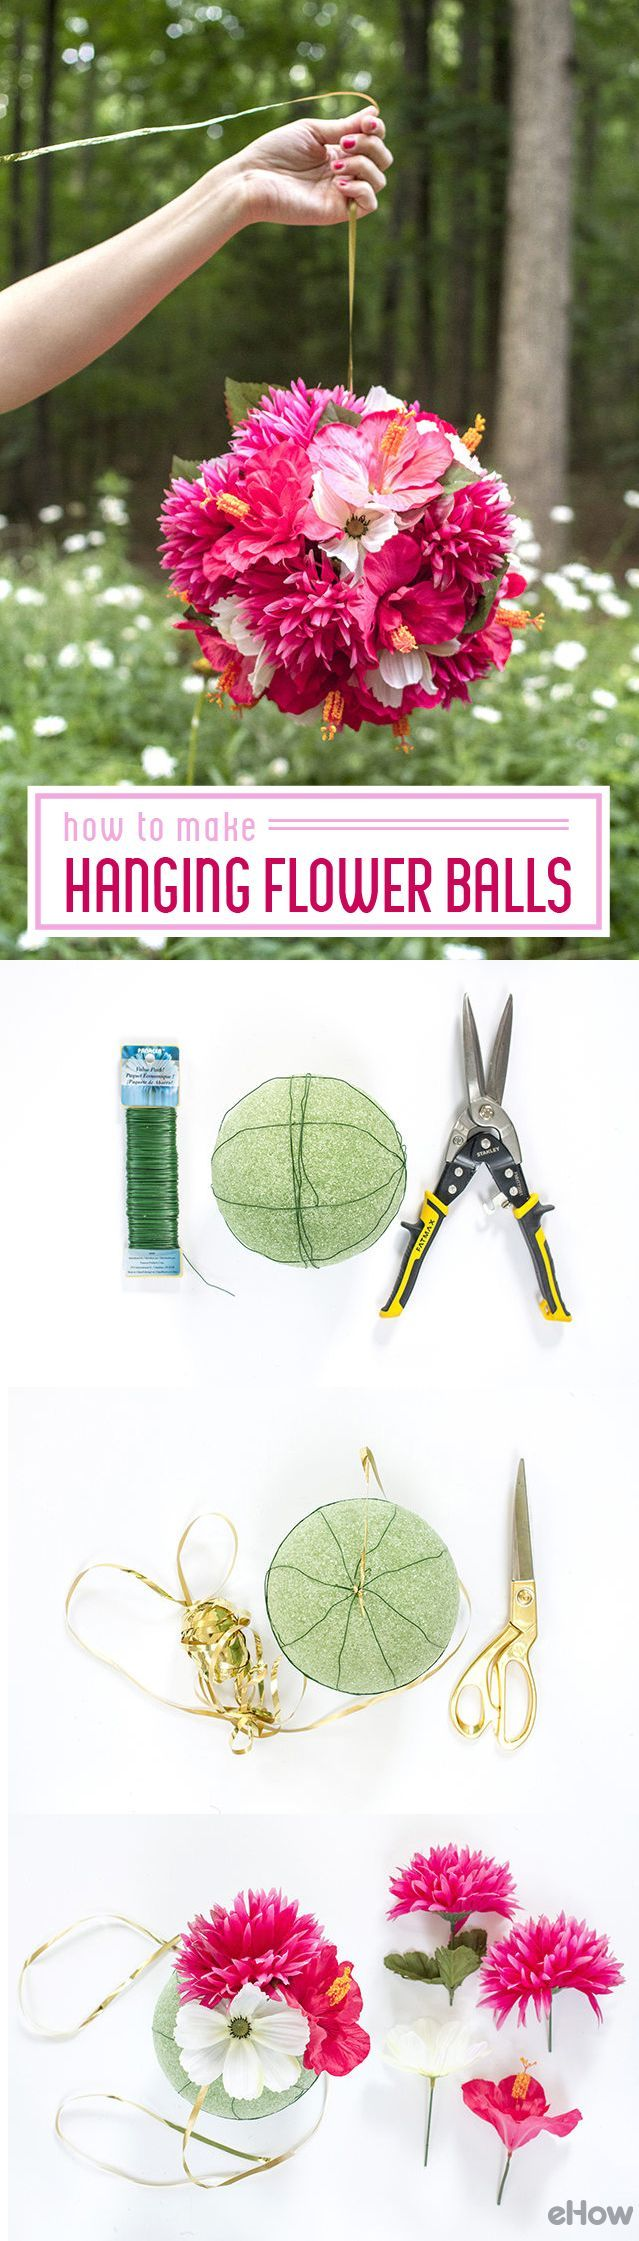 Hanging flower balls instantly light up any room, patio, banquet hall or garden. These are SO easy to make, you  can easily make them for every occasion no matter what season! So beautiful. http://www.ehow.com/how_4787906_make-hanging-flower-balls-wedding.html?utm_source=pinterest.com&utm_medium=referral&utm_content=freestyle&utm_campaign=fanpage